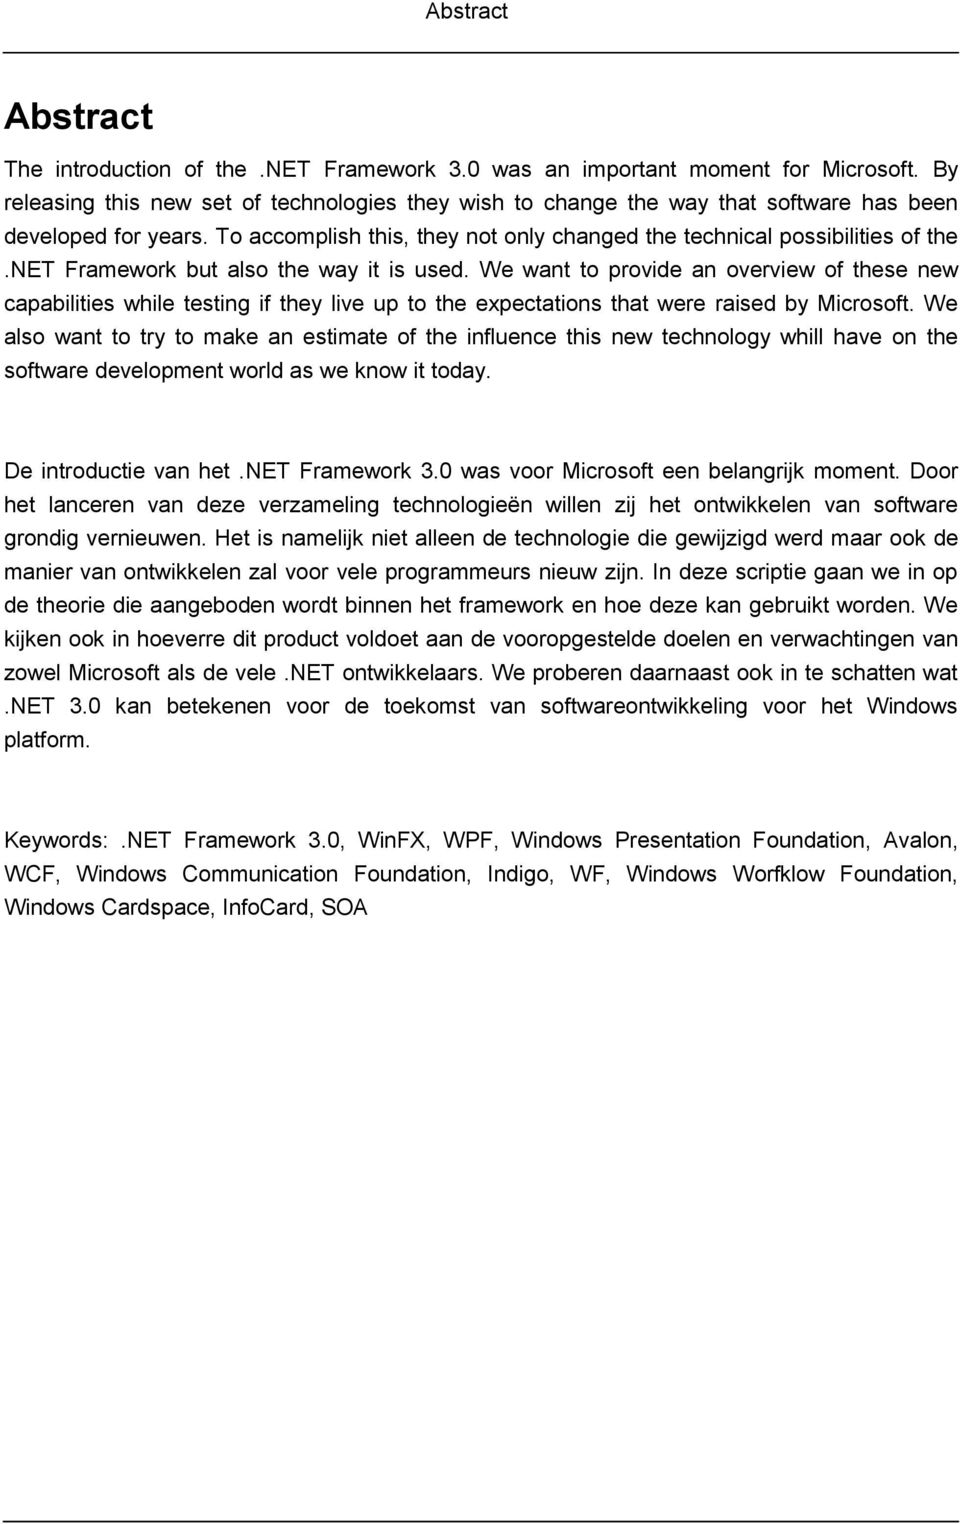 net Framework but also the way it is used. We want to provide an overview of these new capabilities while testing if they live up to the expectations that were raised by Microsoft.